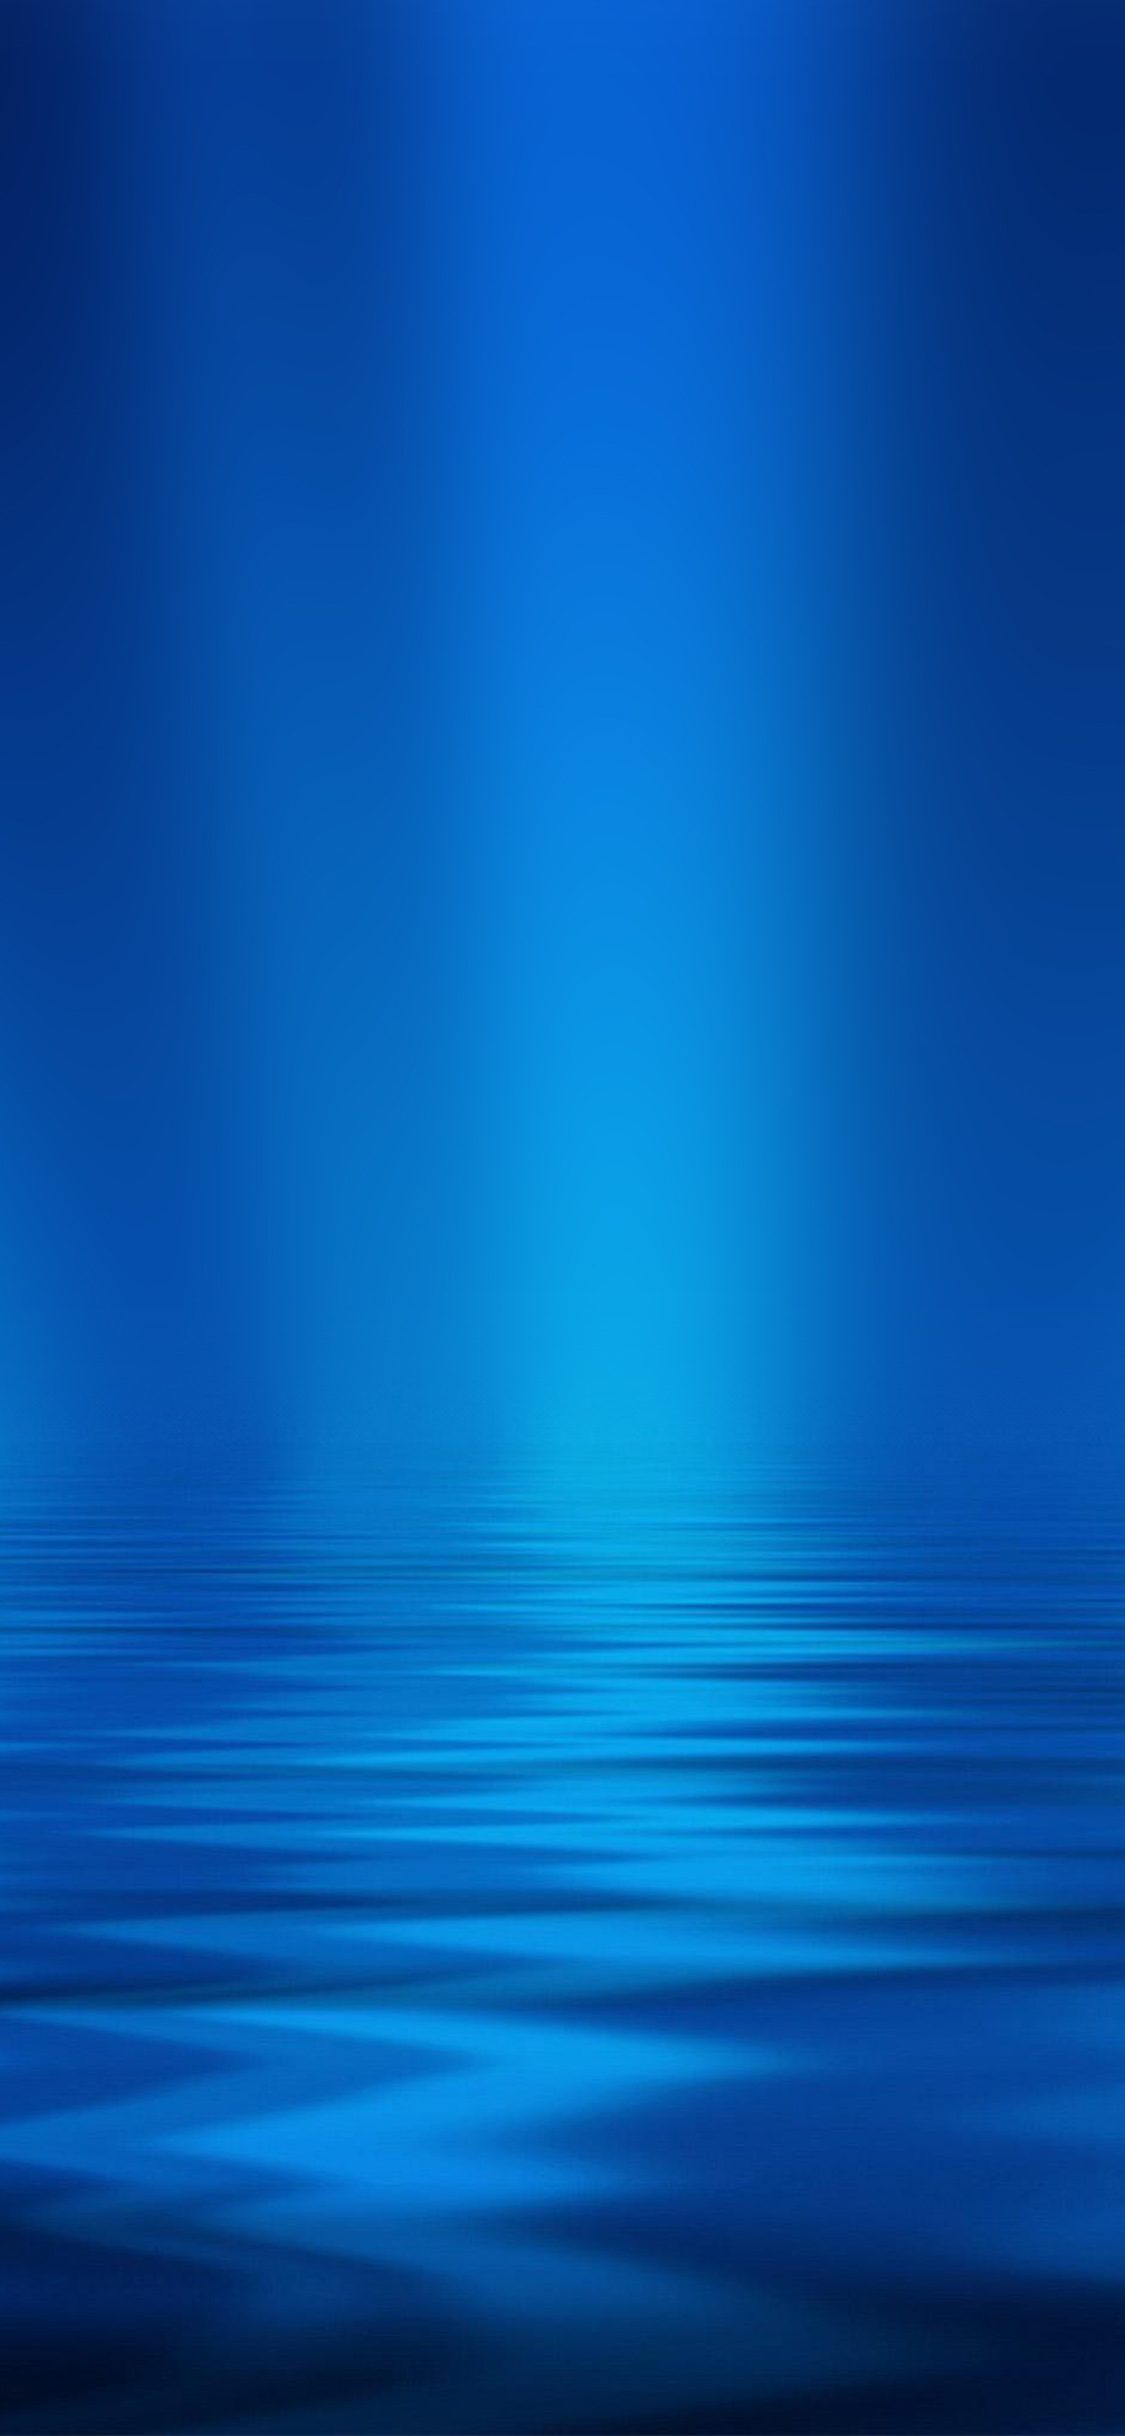 iPhoneXpapers.com-Apple-iPhone-wallpaper-vp64-sea-blue-ripple-pattern